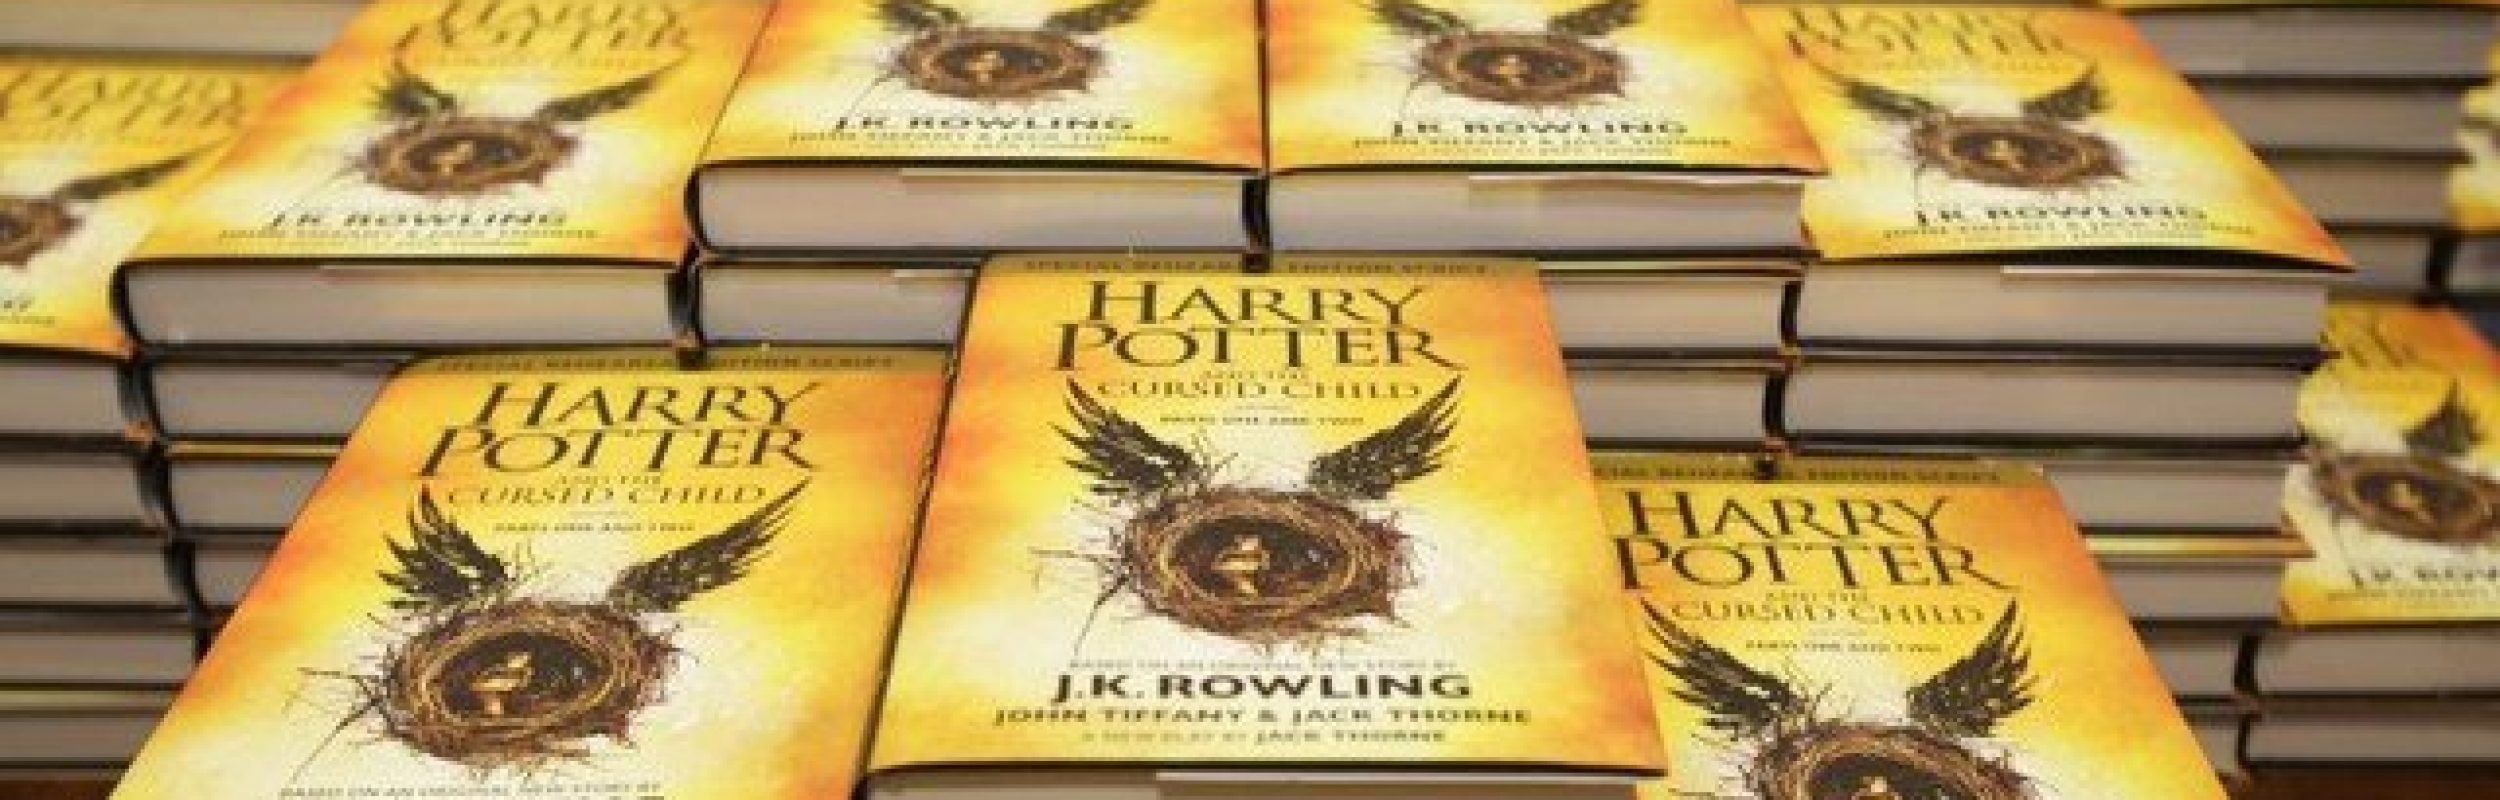 Harry Potter and the Cursed Child – un ritorno necessario?